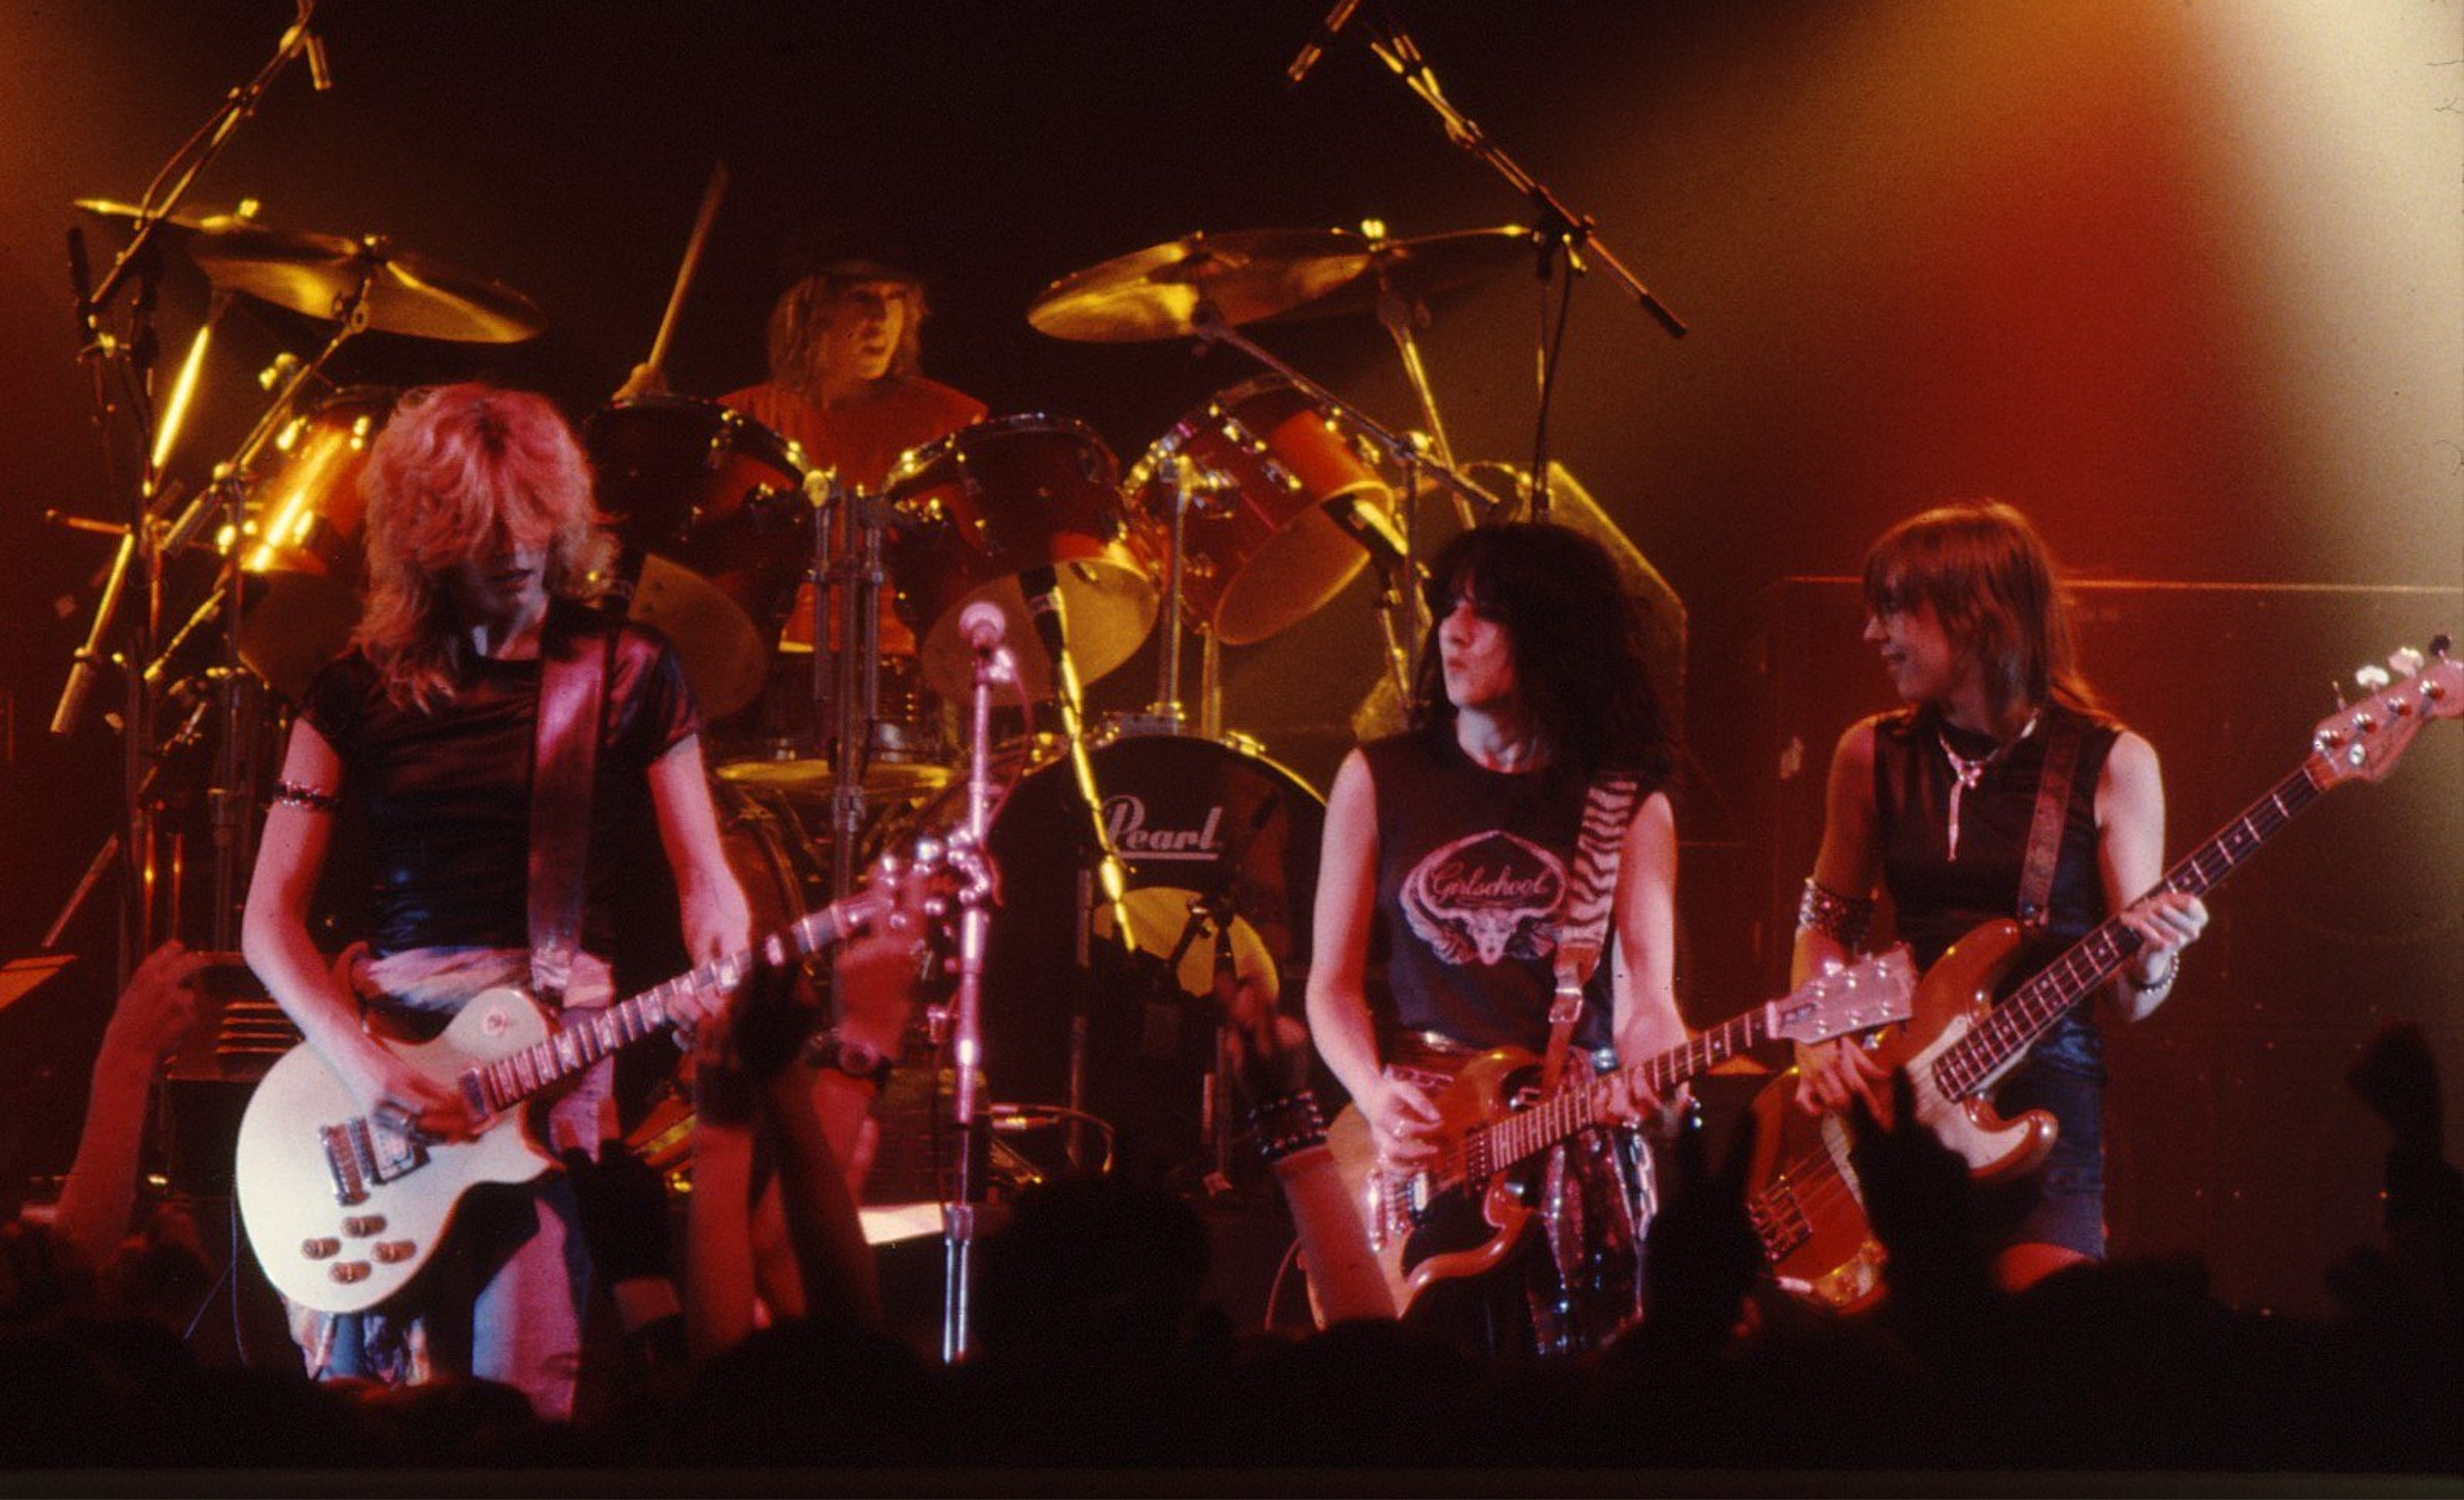 Girlschool at uea in 1981